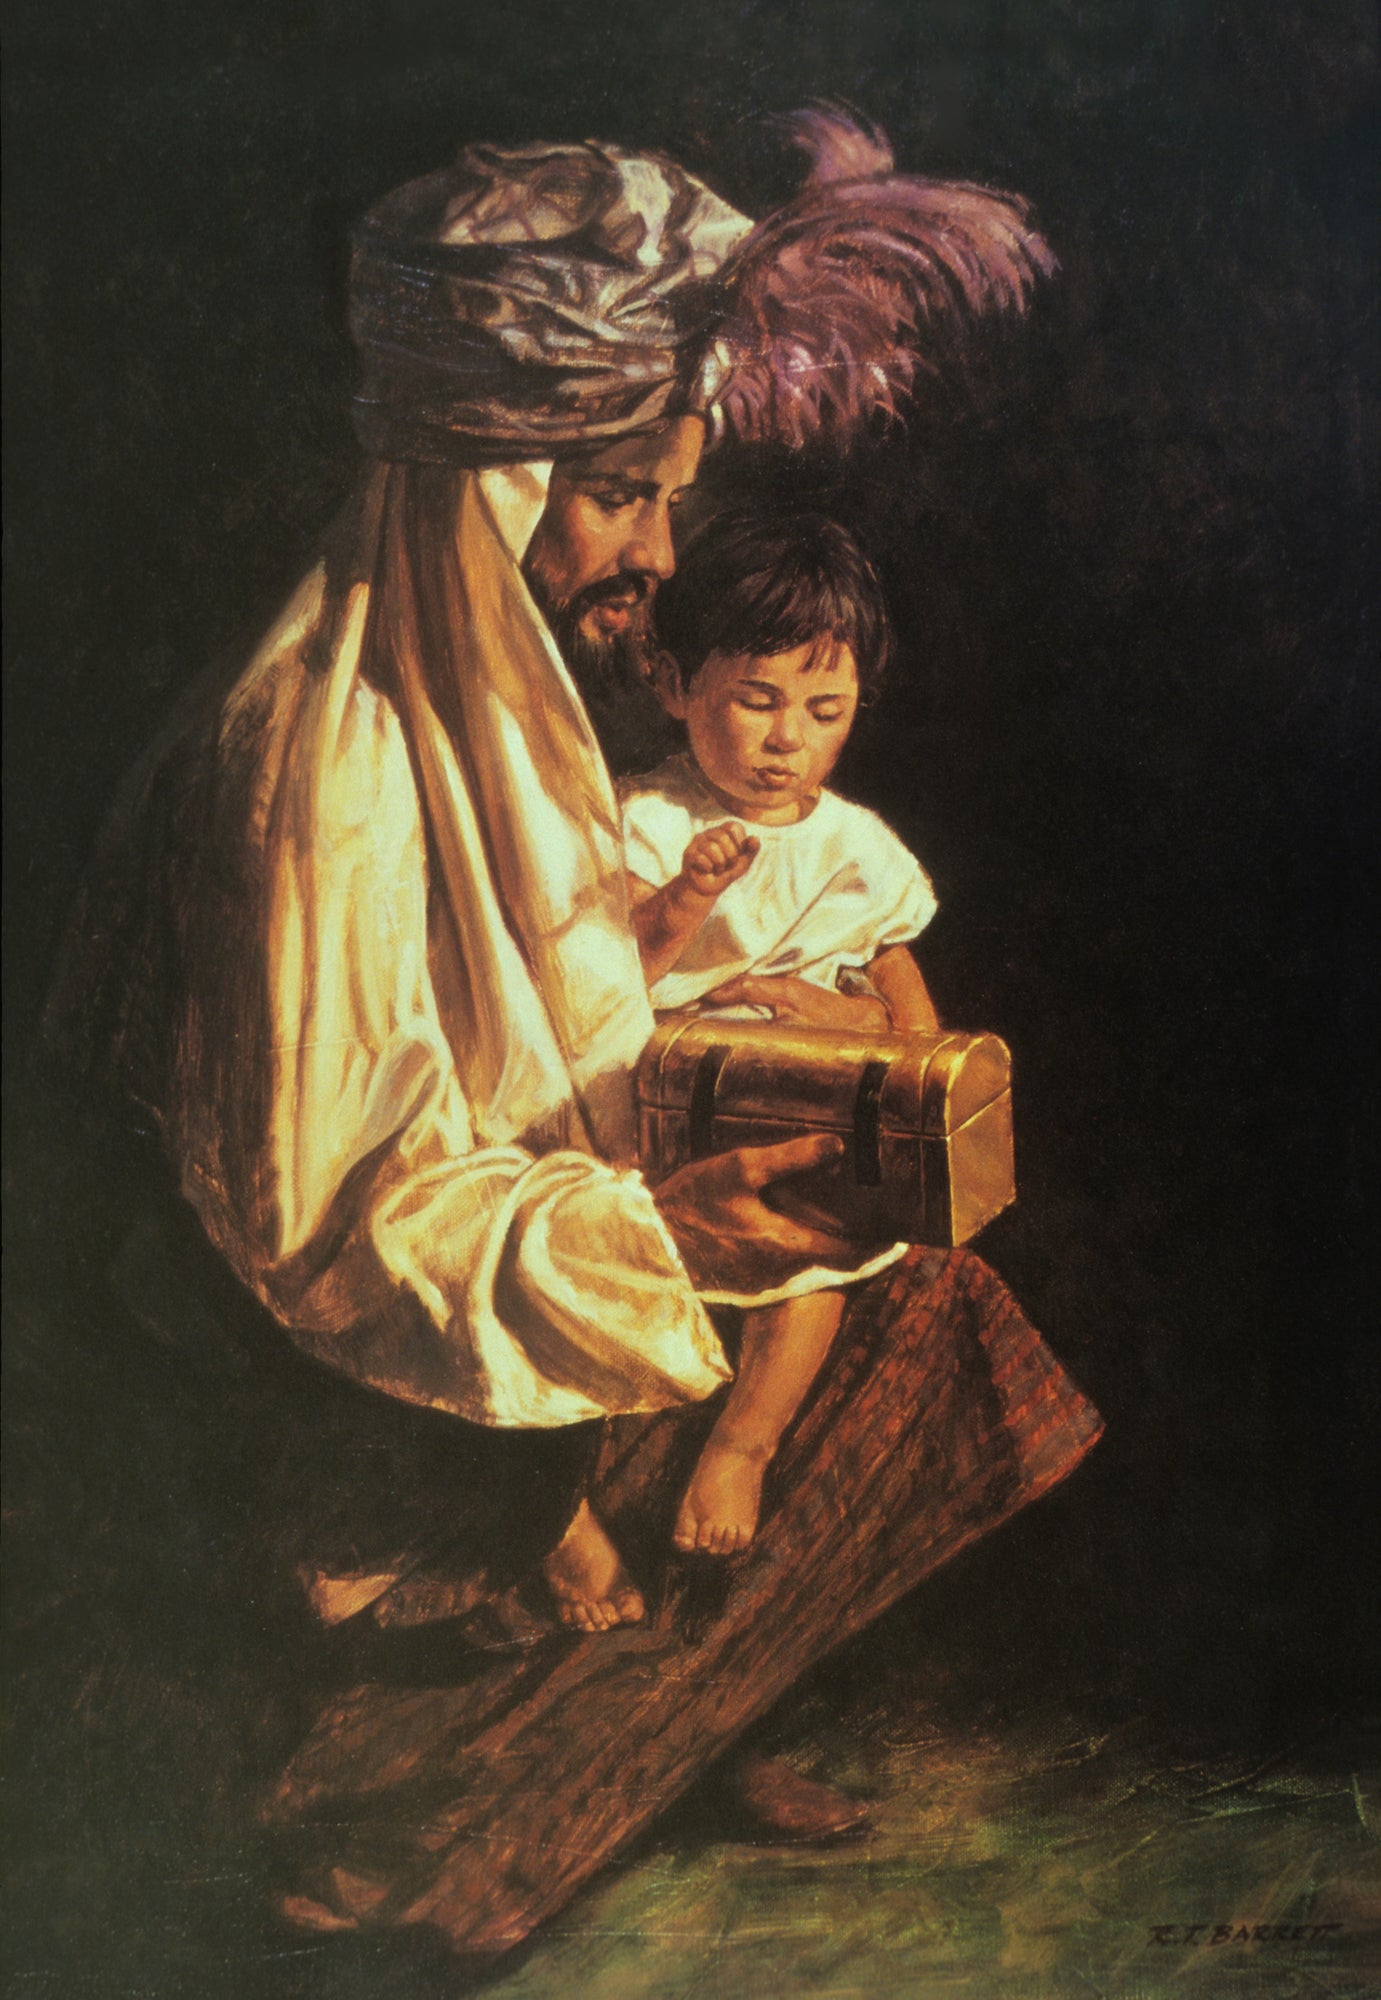 Young Christ with a Wiseman by Robert Barrett